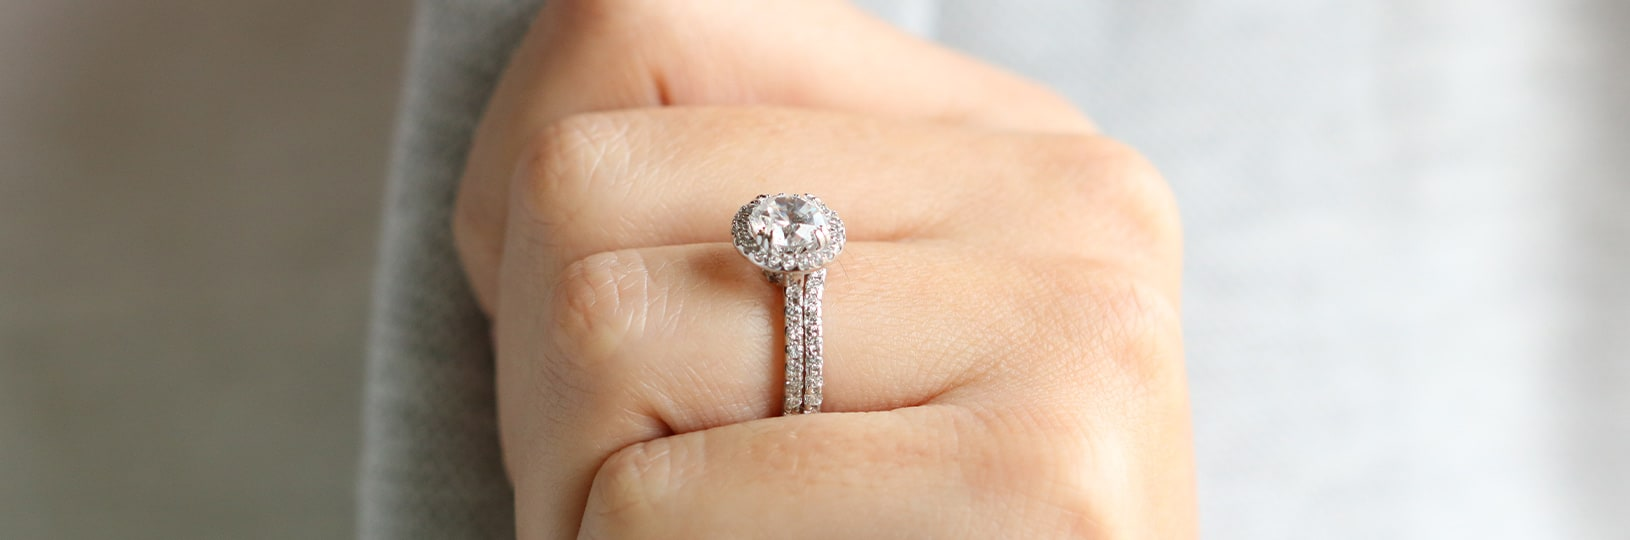 Image of a round cut engagement ring